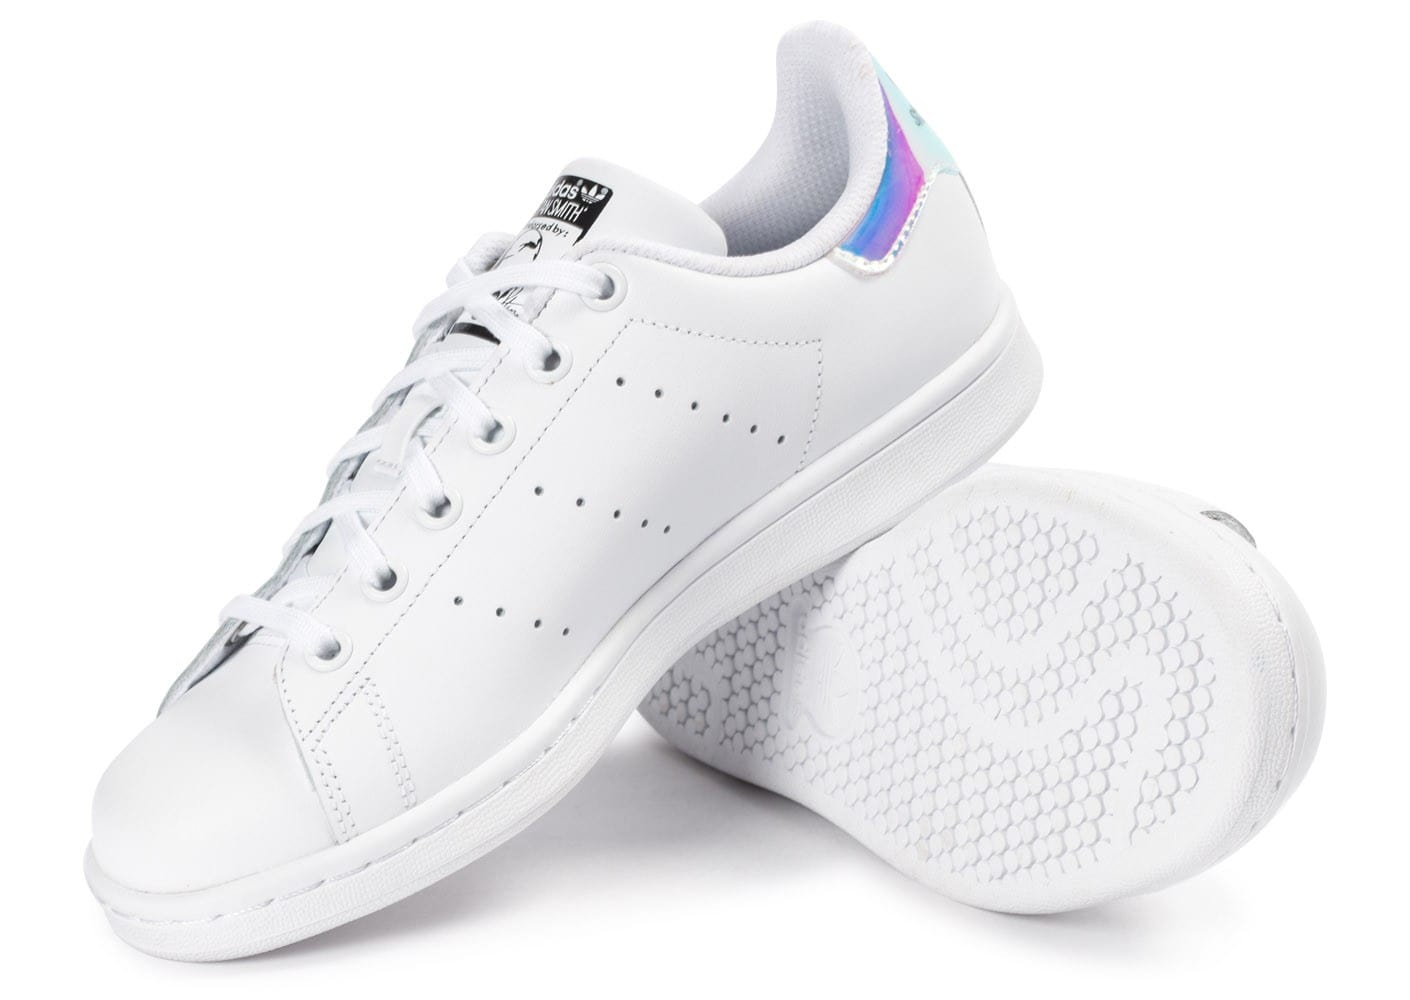 Adidas Chaussures Stan Smith Chausport Blanche Iridescente wPTkZOXiu